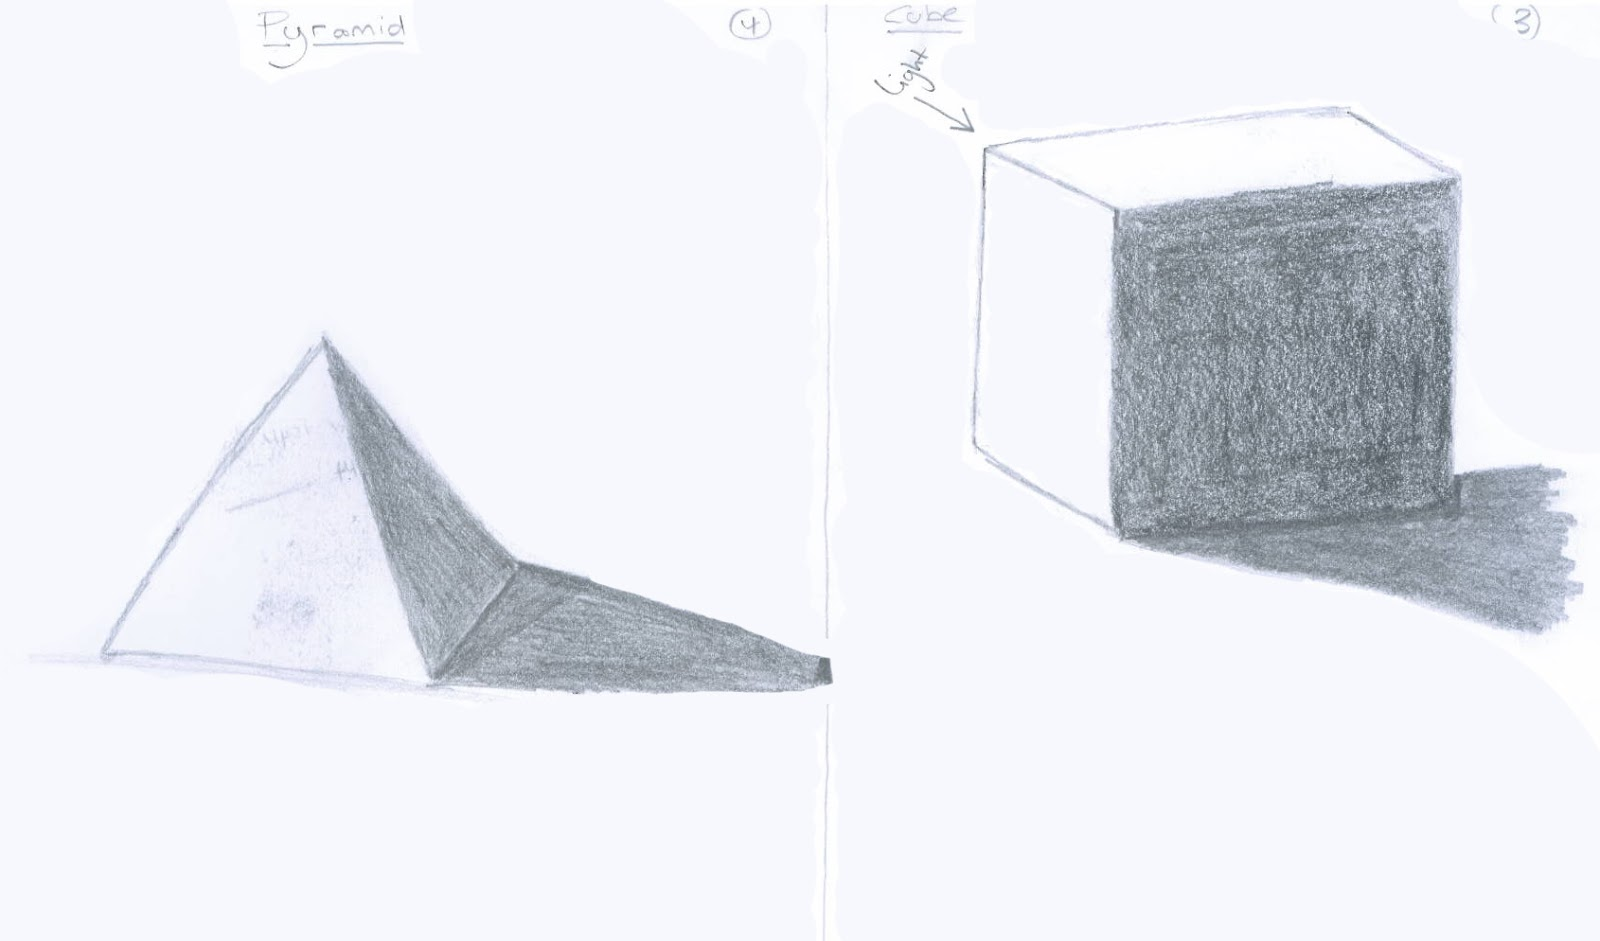 how to draw a pyramid in word